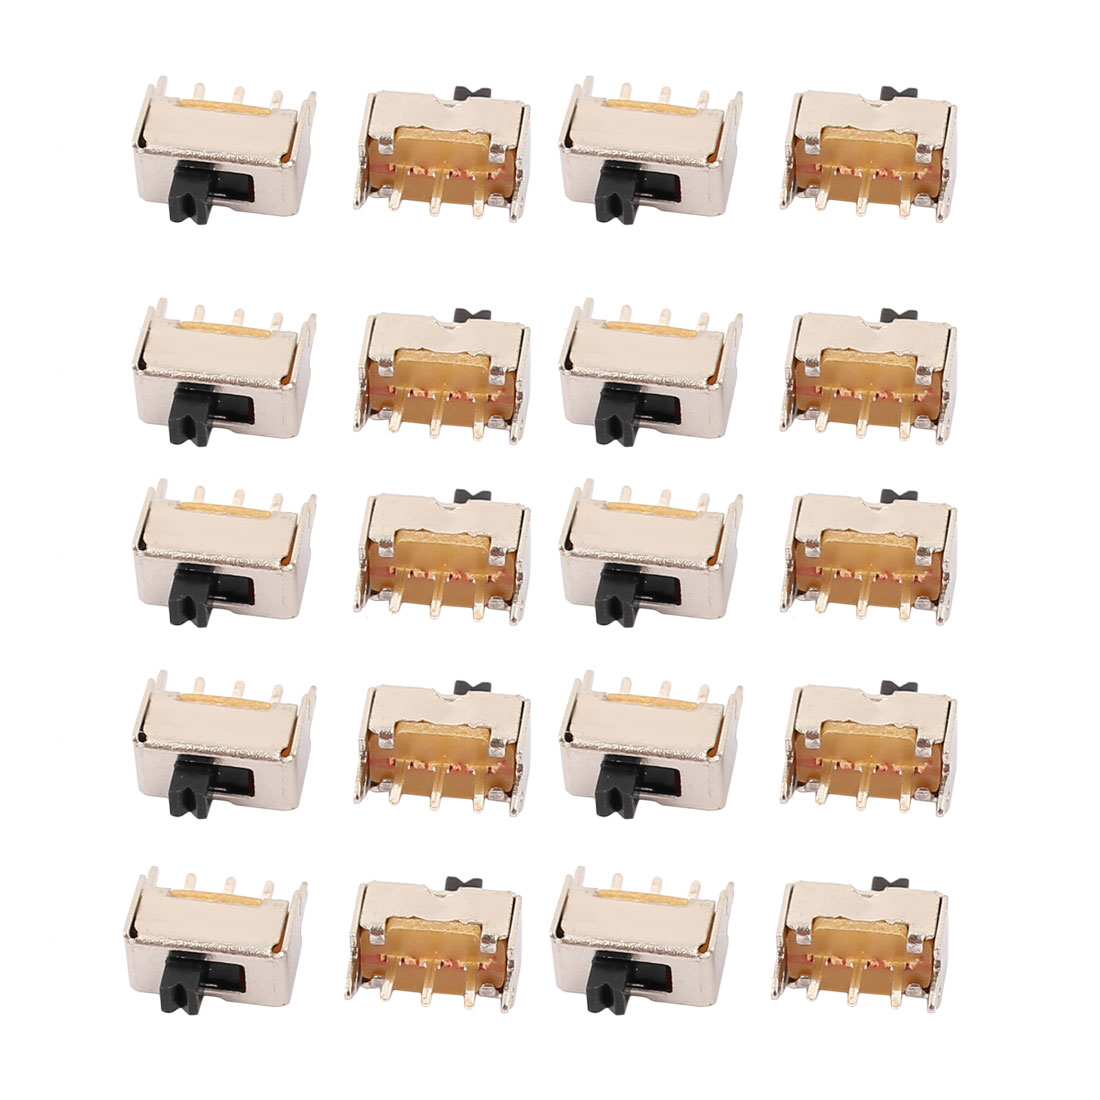 20Pcs SS-12D07 2 Position 3P SPDT Mini Slide Switch Latching Toy Switch